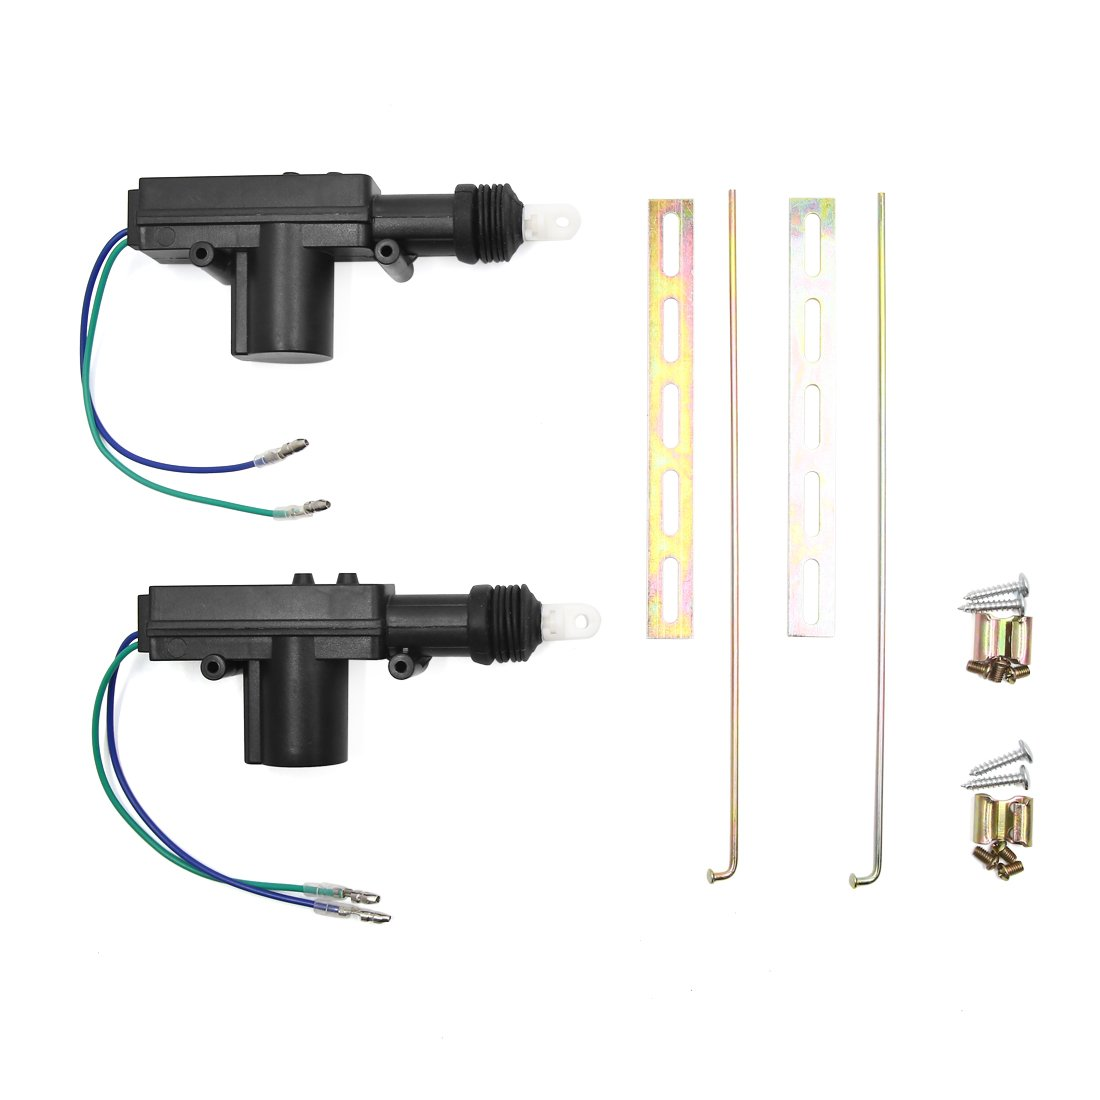 Uxcell A18031600ux0162 Universal Car Power Door Actuator Lock Wiring Diagram Kit For Central Locking System 2 Wire Dc 12v Pack Of Automotive